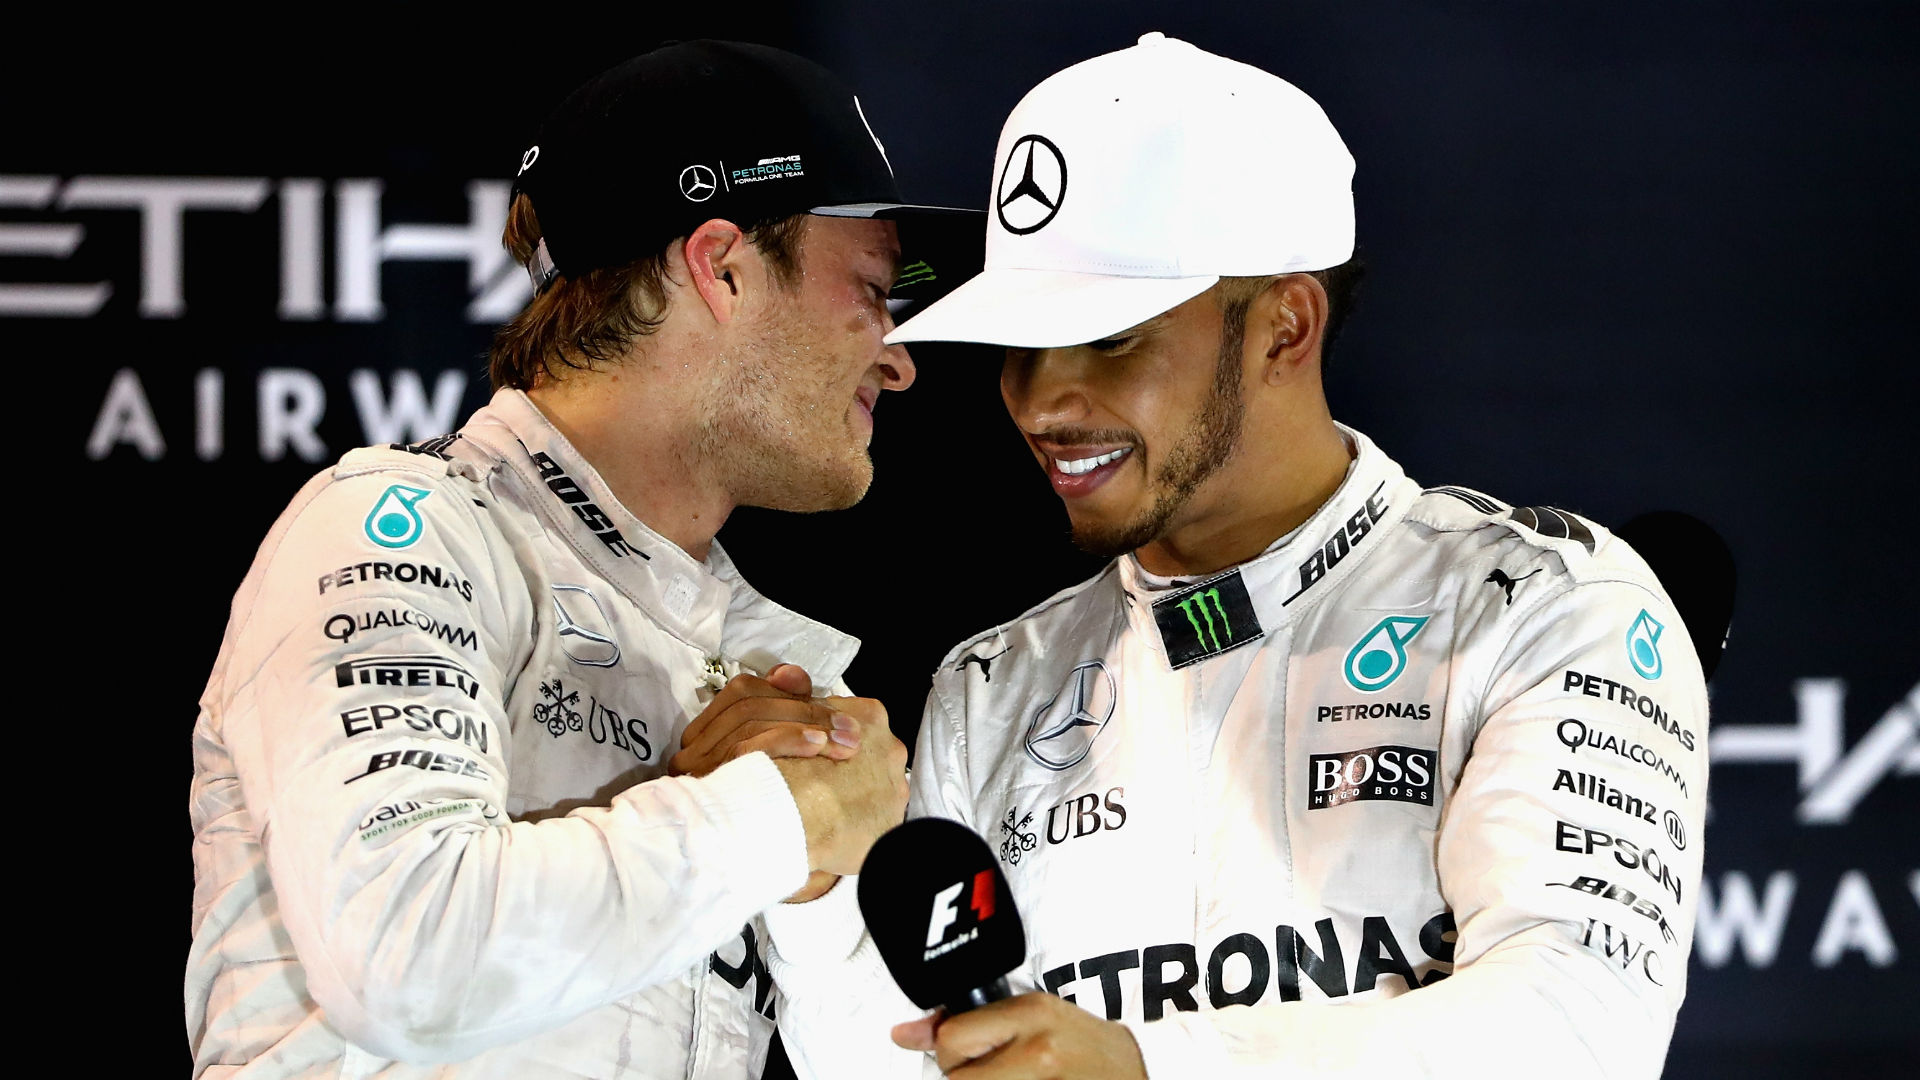 Hamilton will break Schumacher's records, predicts Rosberg